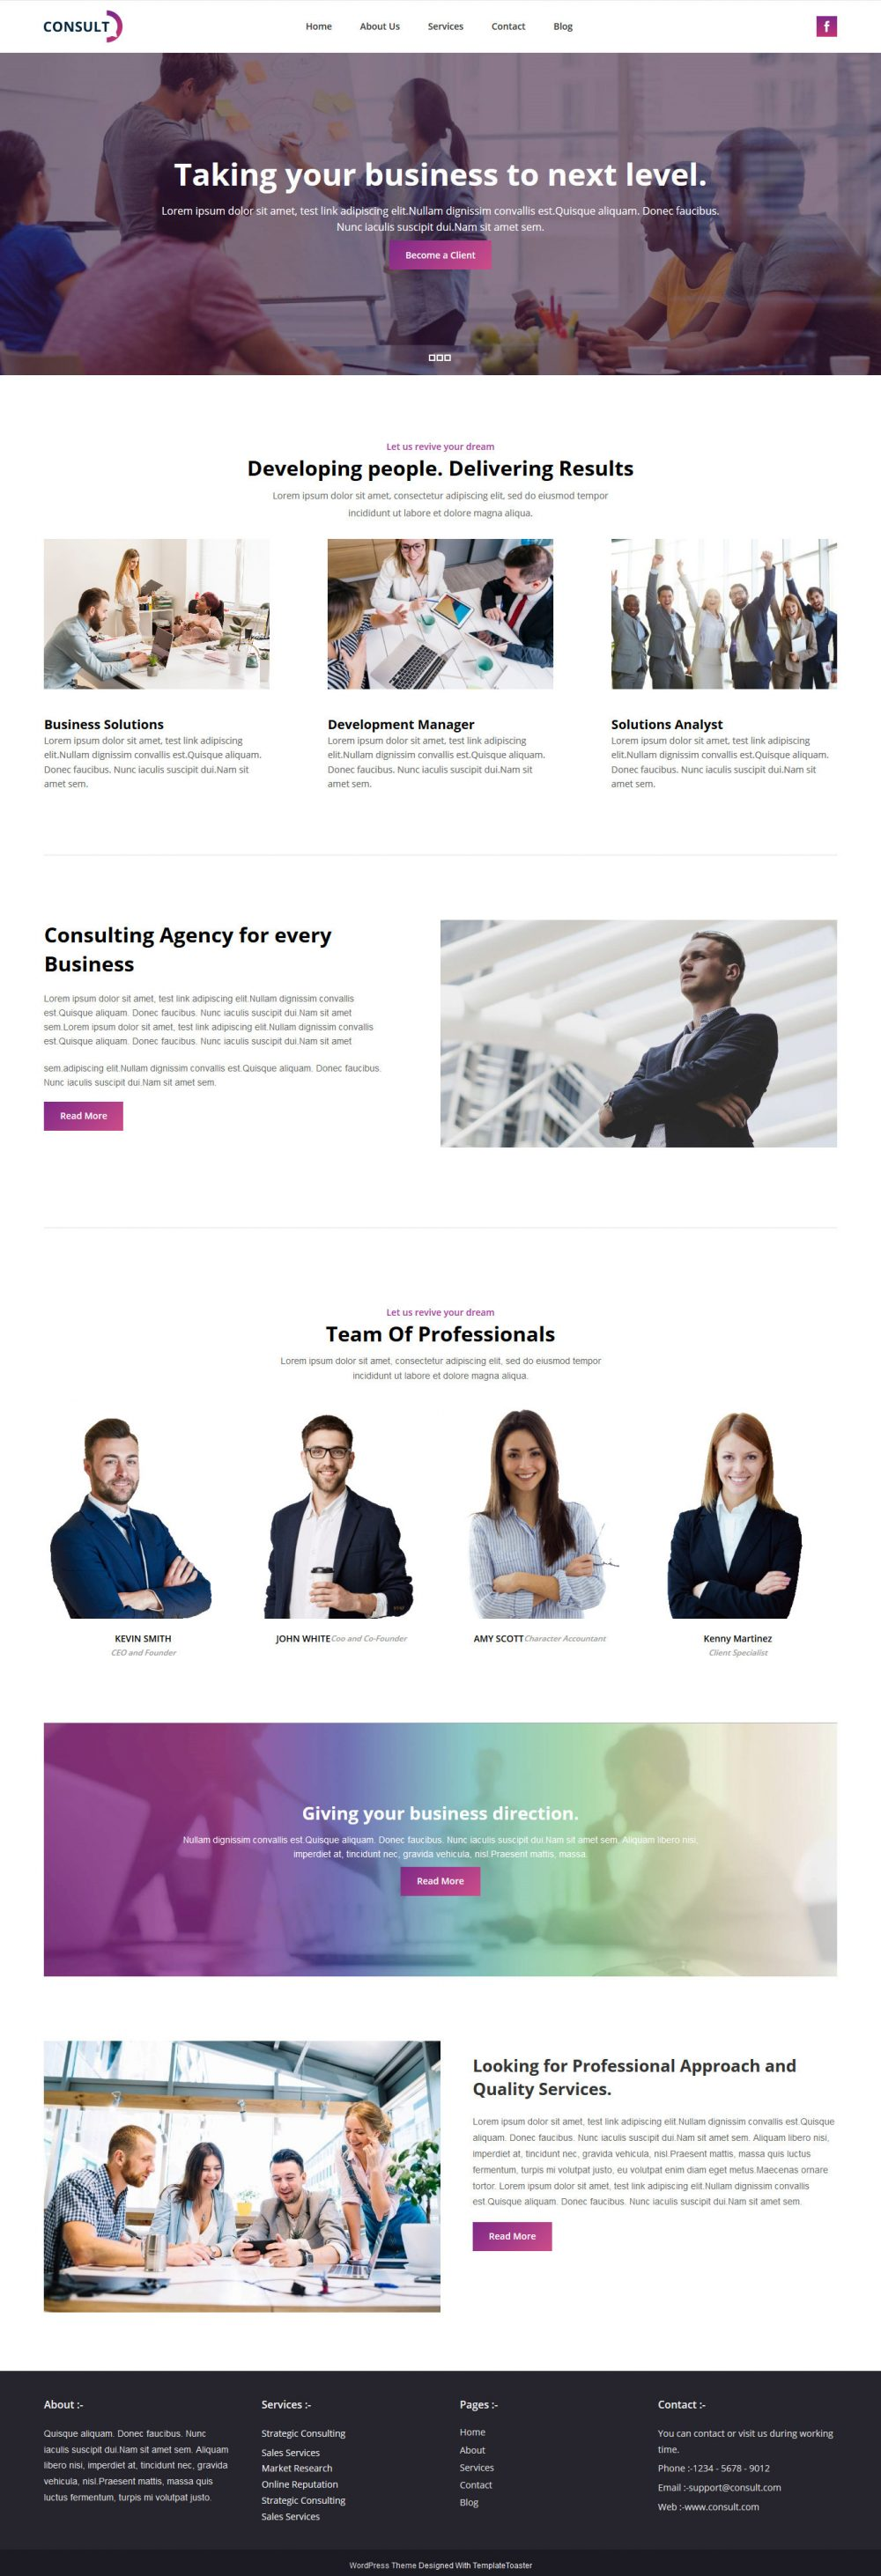 Consult Consulting Company Drupal Theme